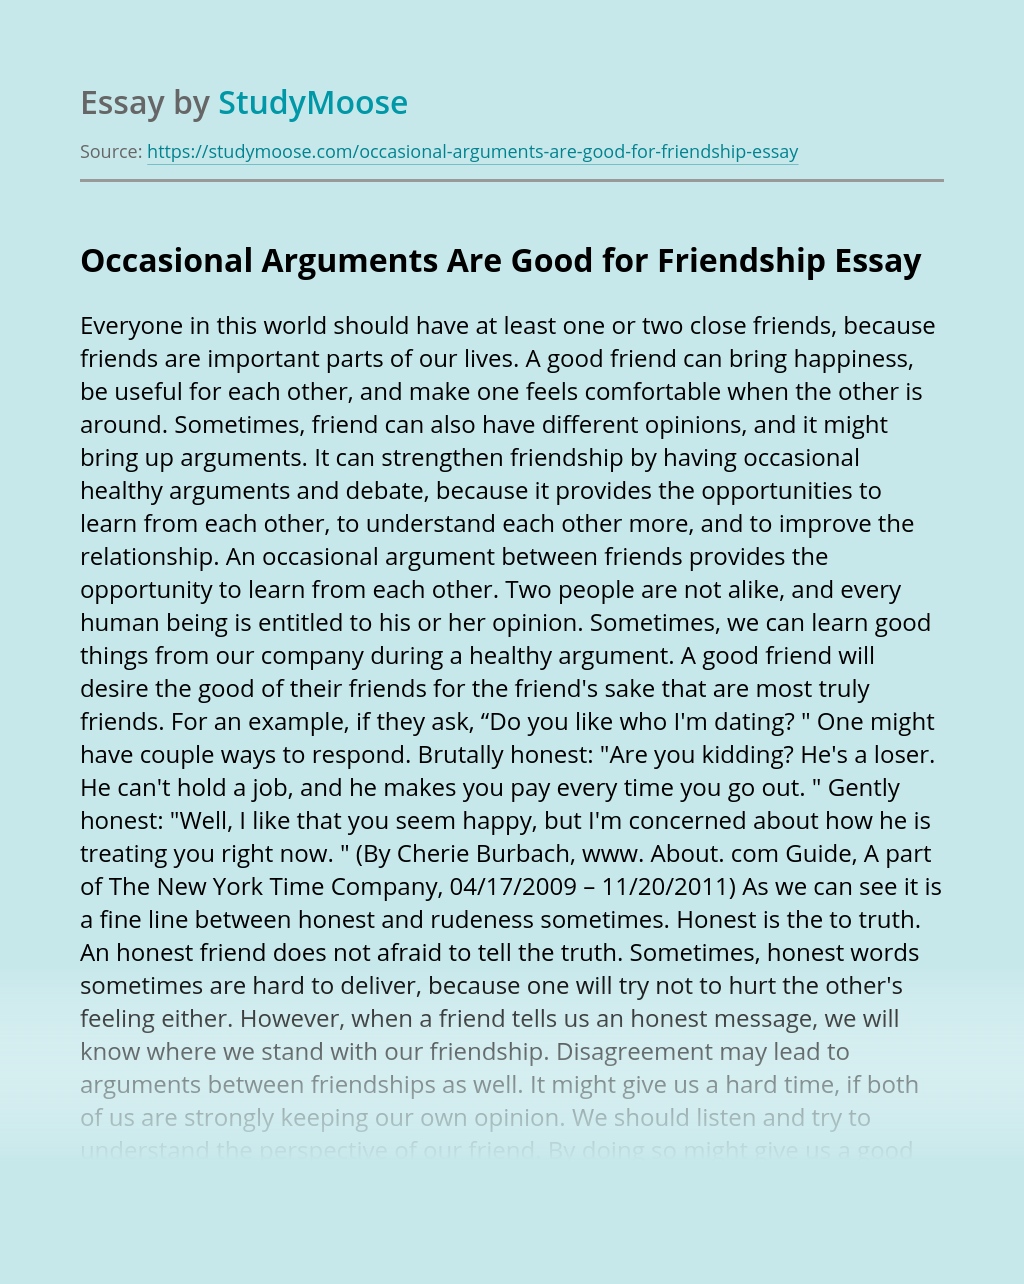 Occasional Arguments Are Good for Friendship